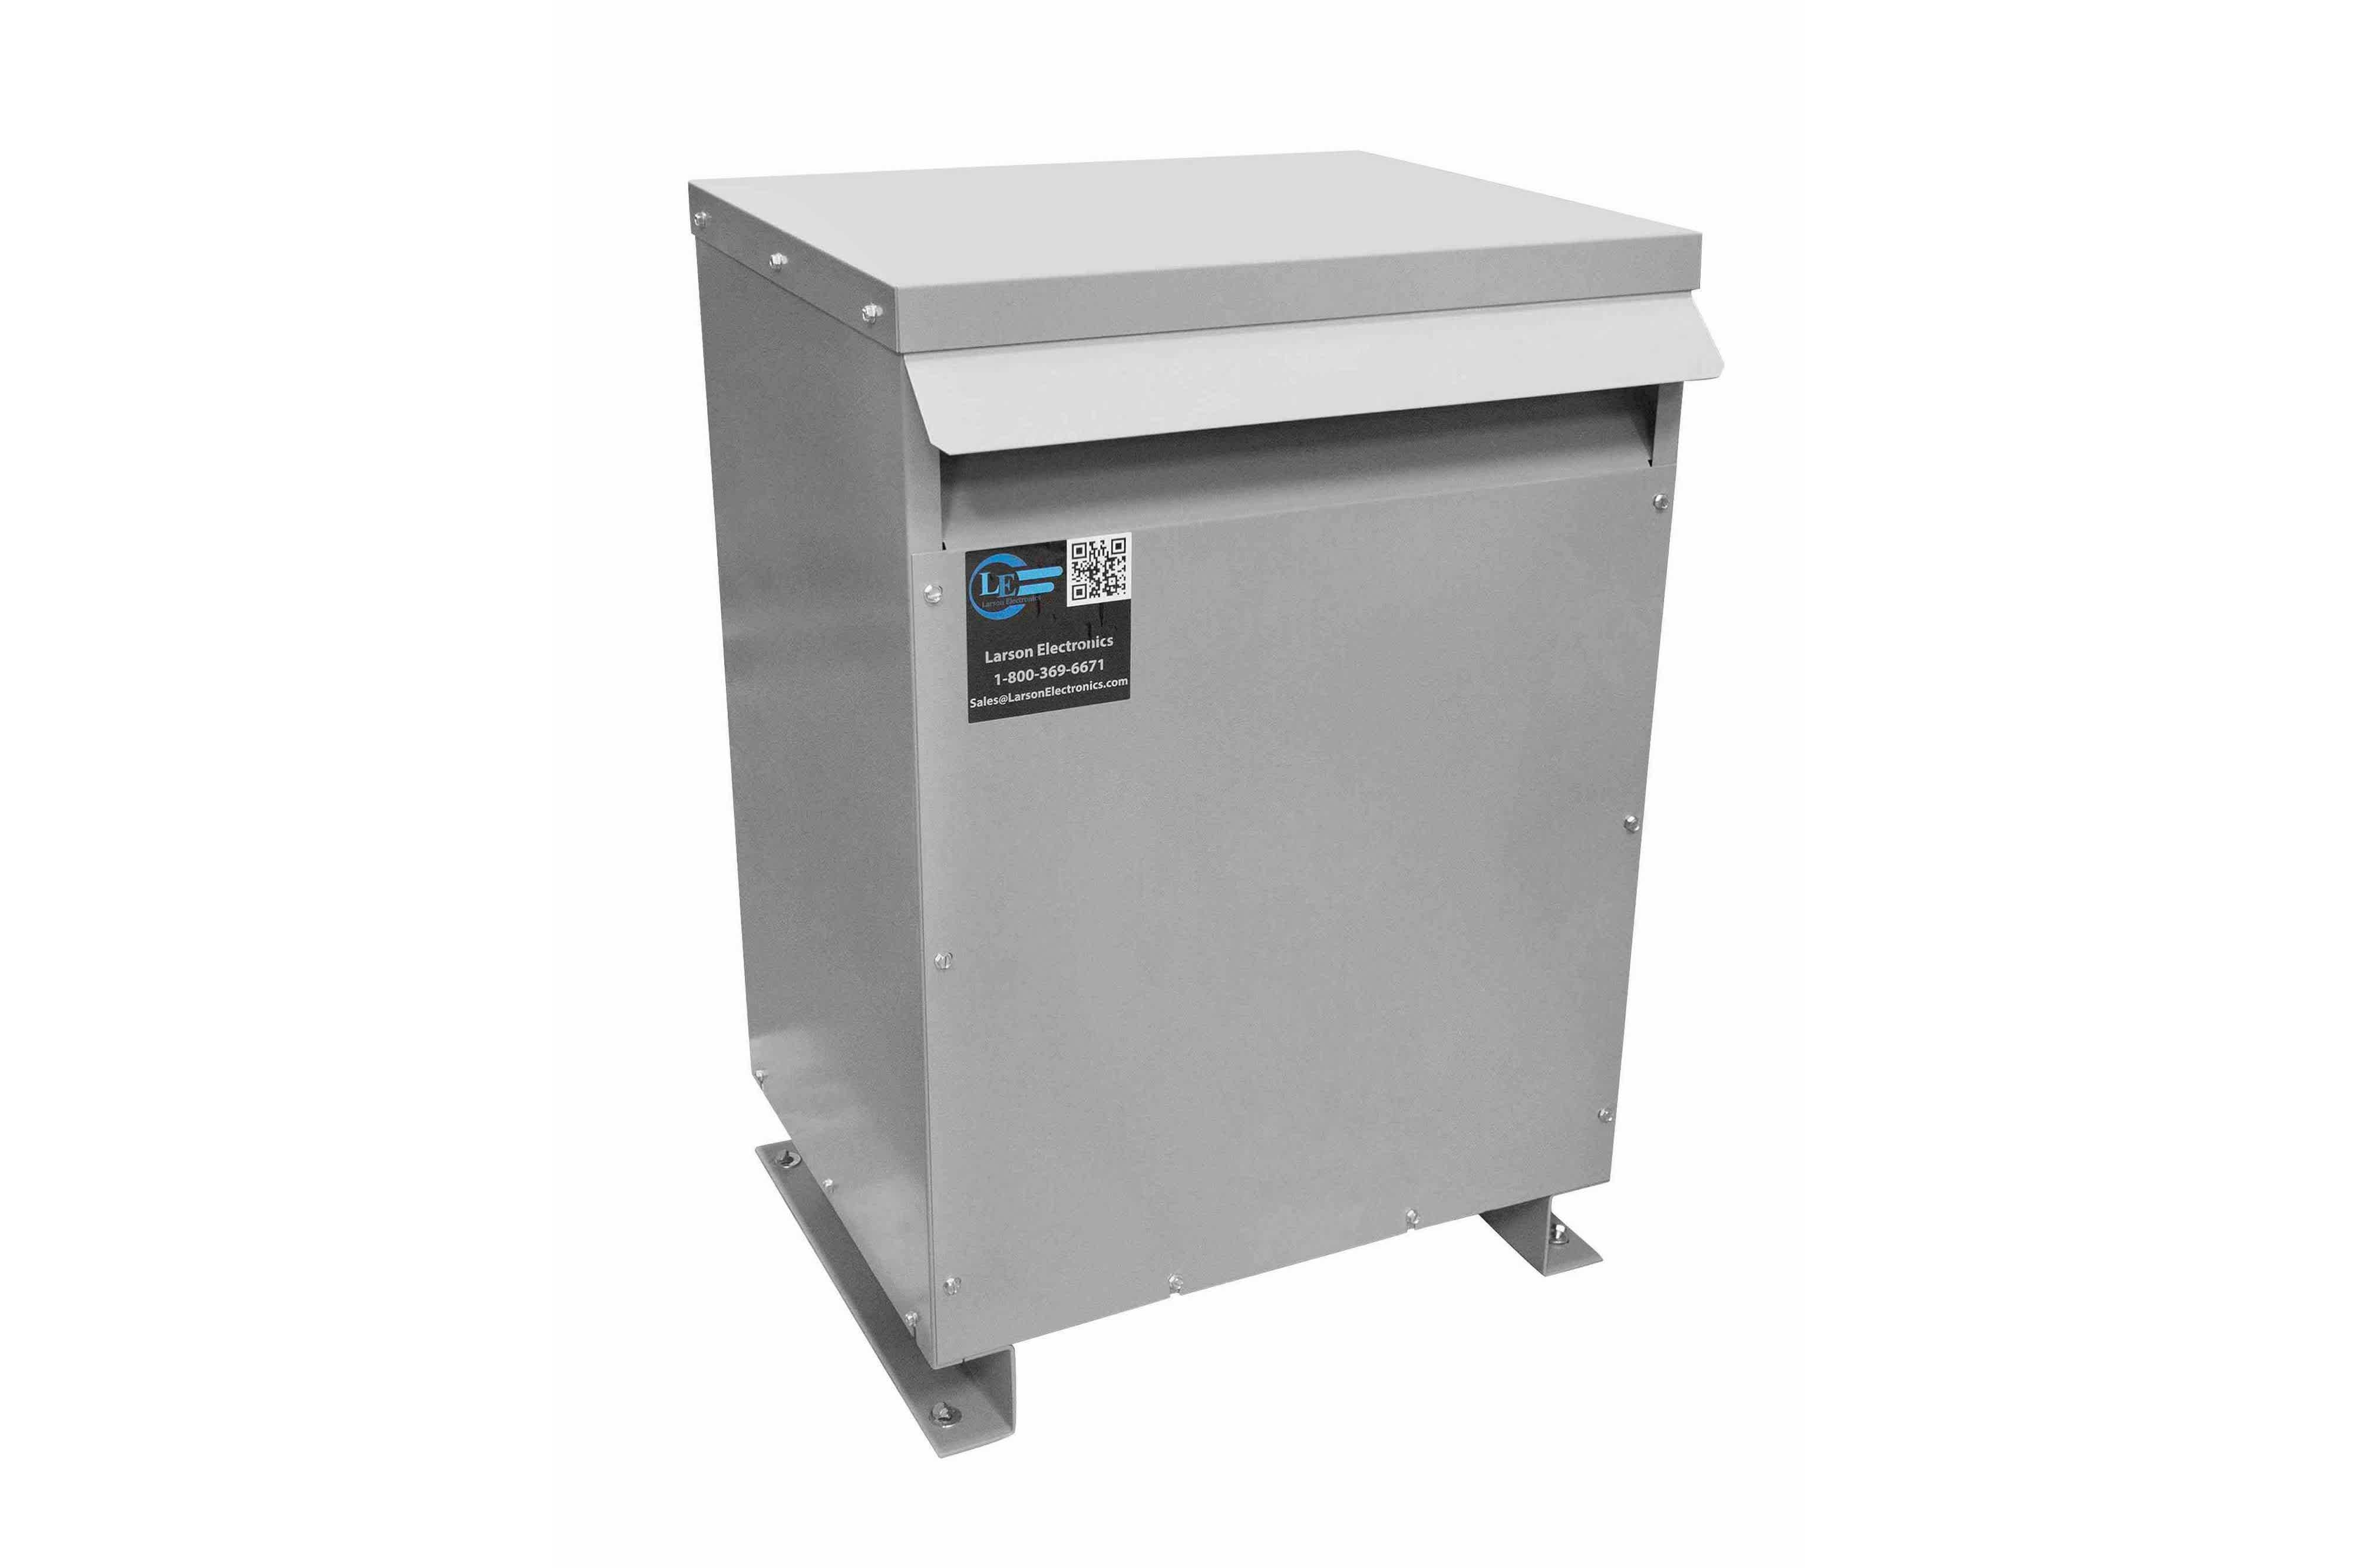 20 kVA 3PH Isolation Transformer, 460V Wye Primary, 400Y/231 Wye-N Secondary, N3R, Ventilated, 60 Hz